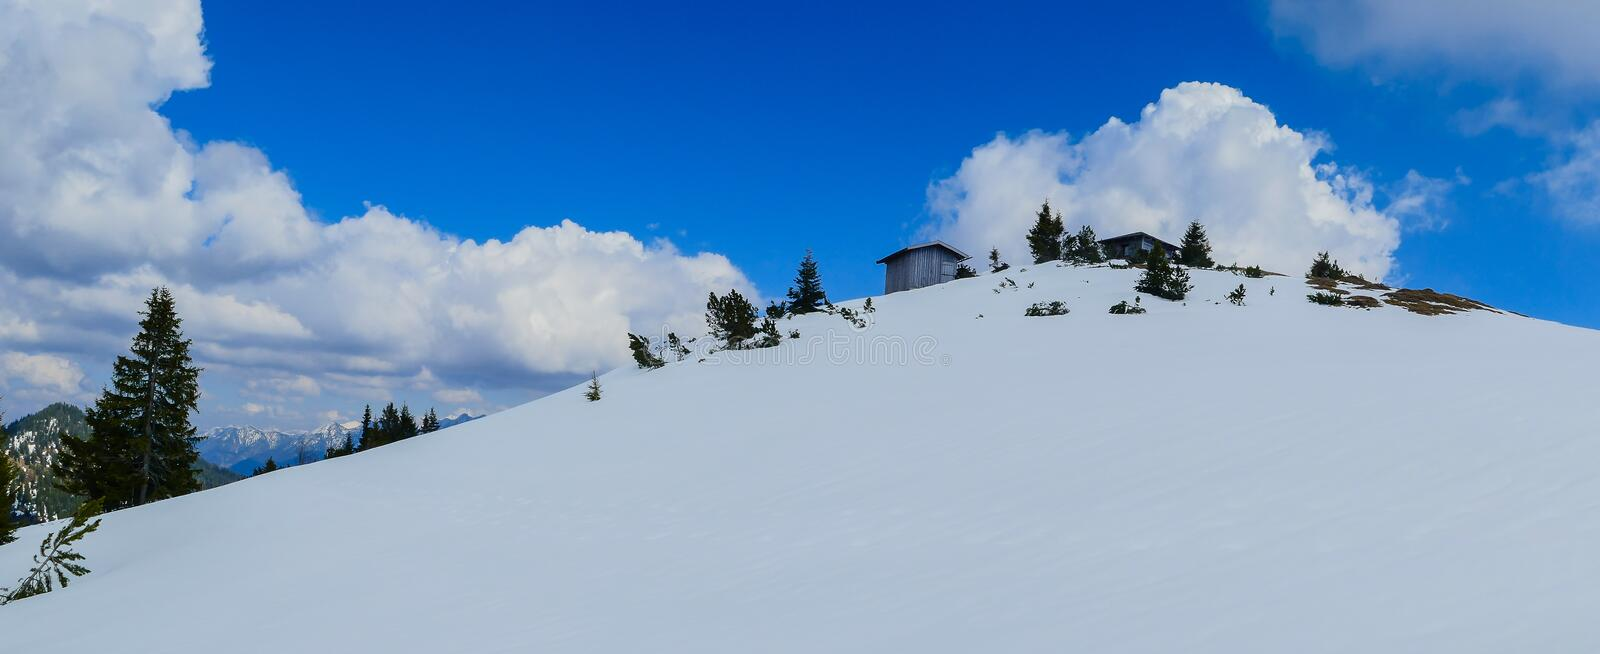 Mountain with hut in the snow in the alps royalty free stock photo